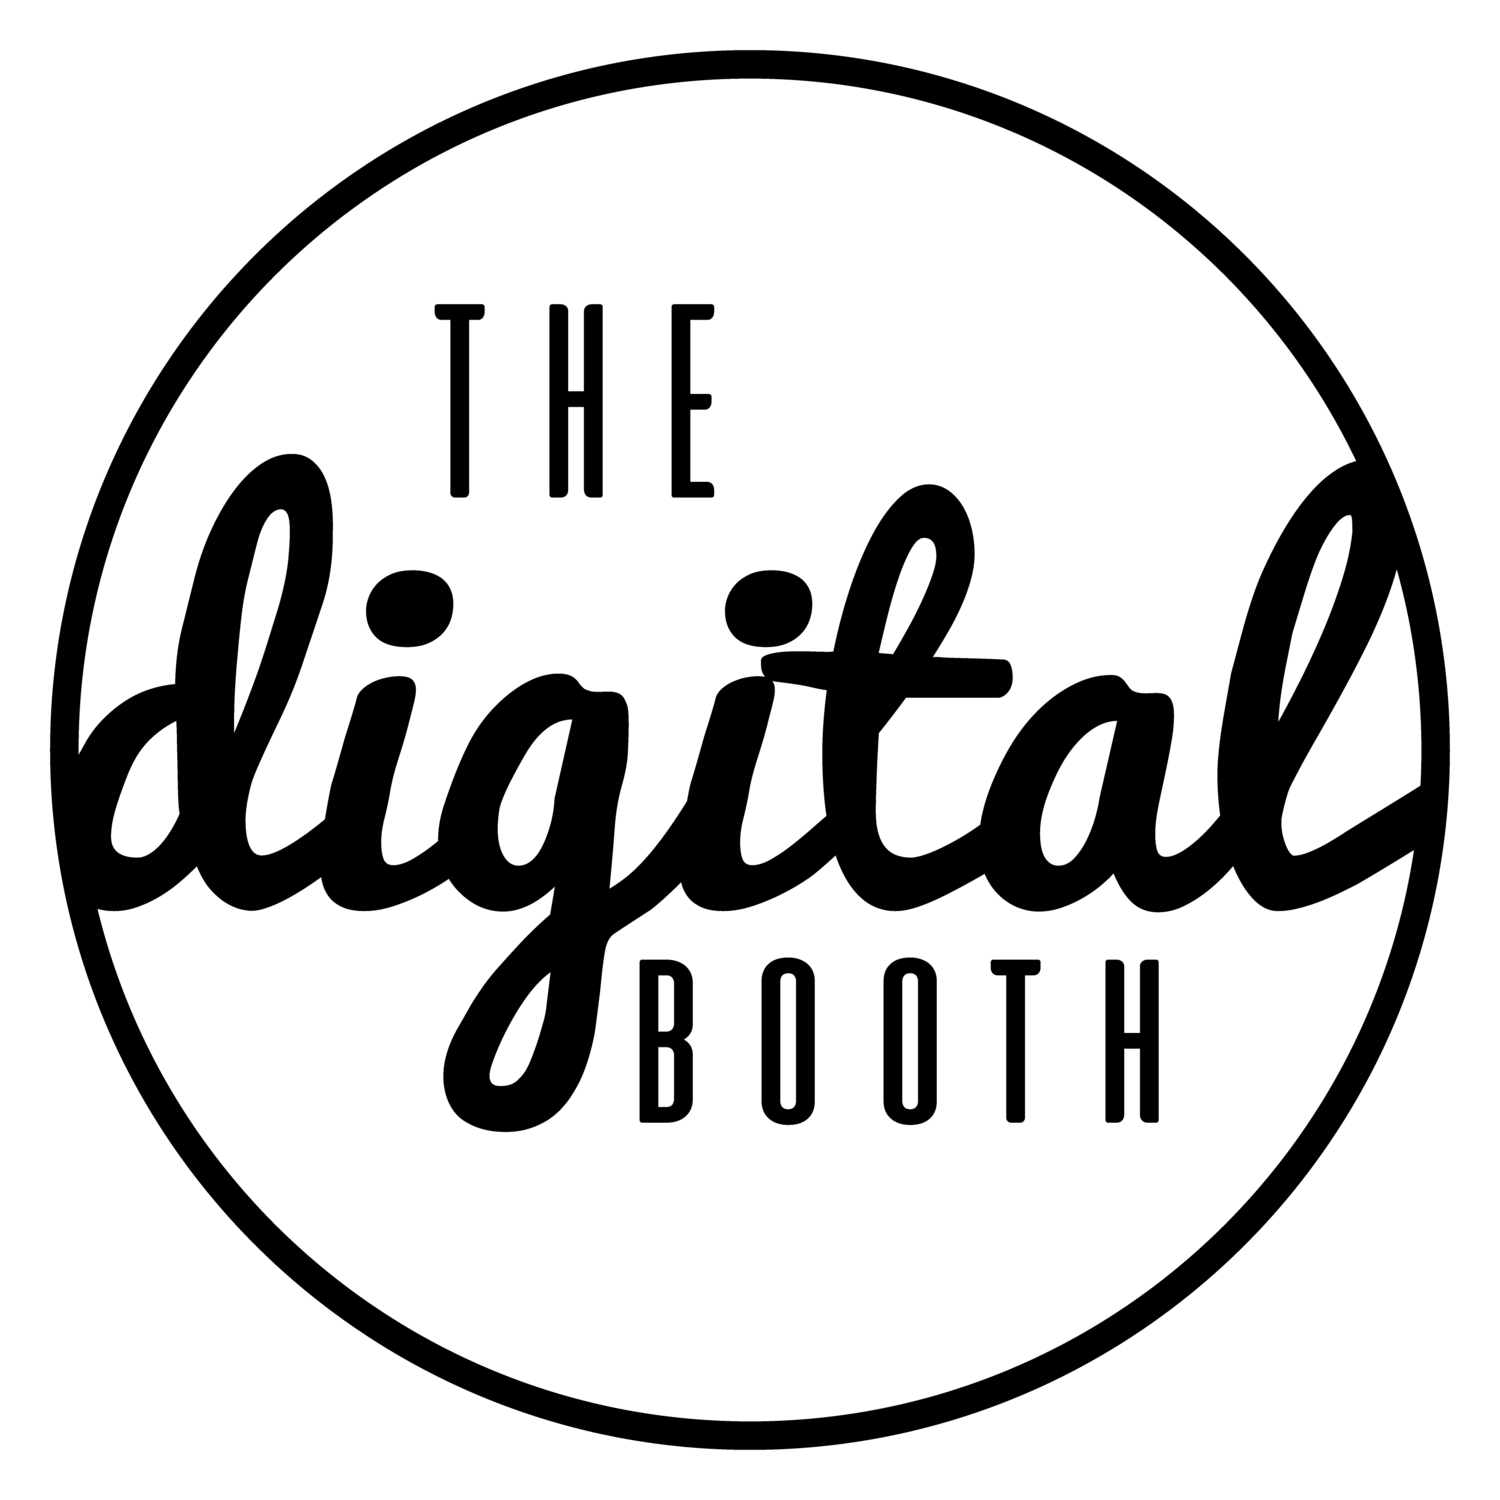 The Digital Booth